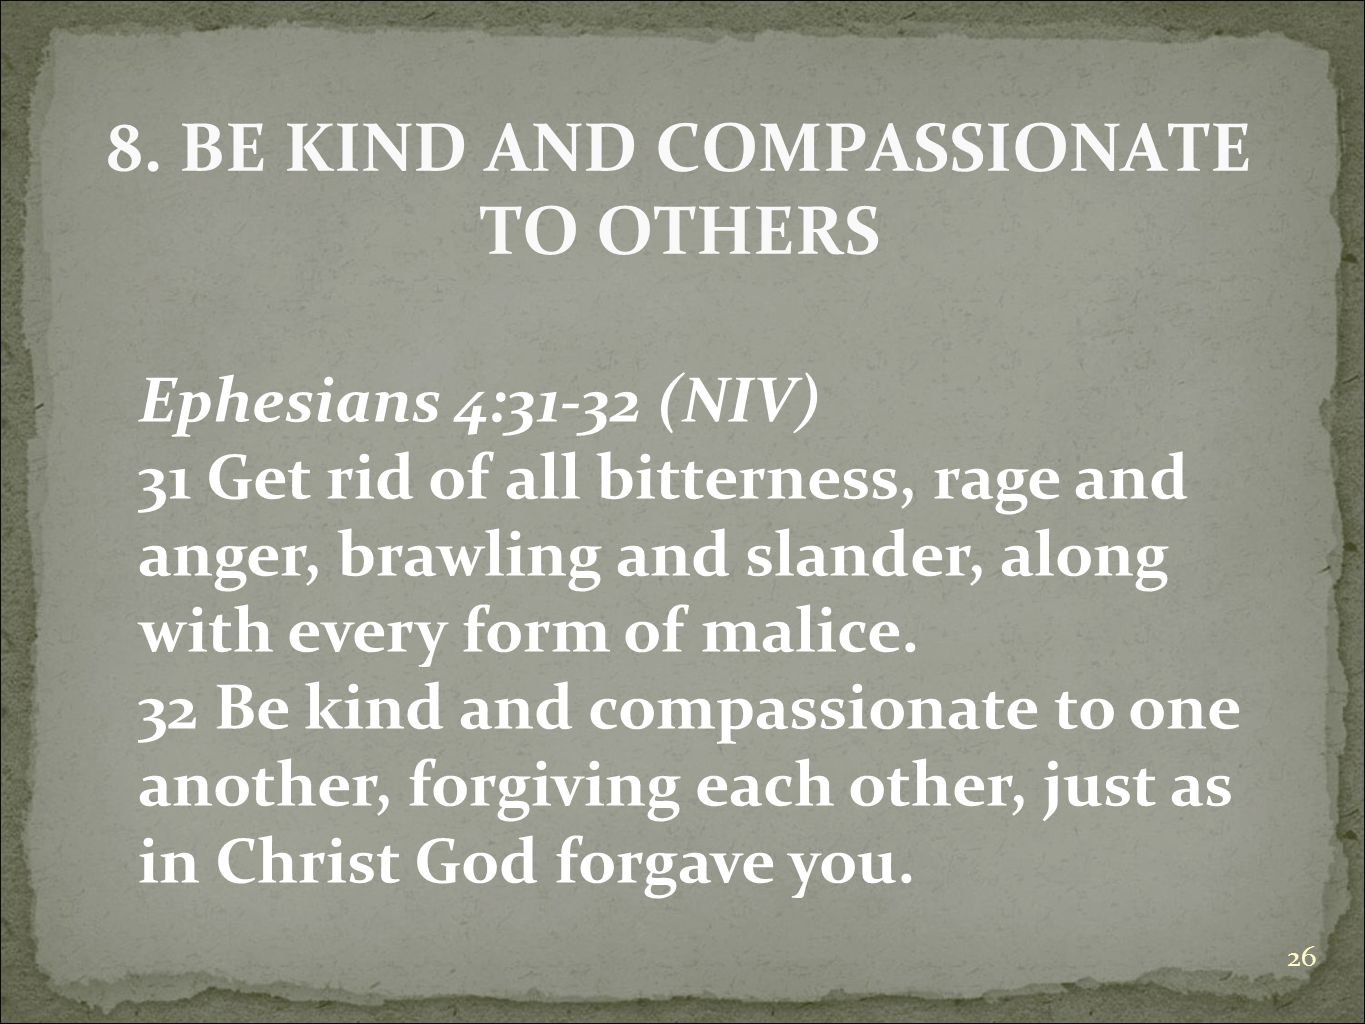 26 Ephesians 4:31-32 (NIV) 31 Get rid of all bitterness, rage and anger, brawling and slander, along with every form of malice. 32 Be kind and compass